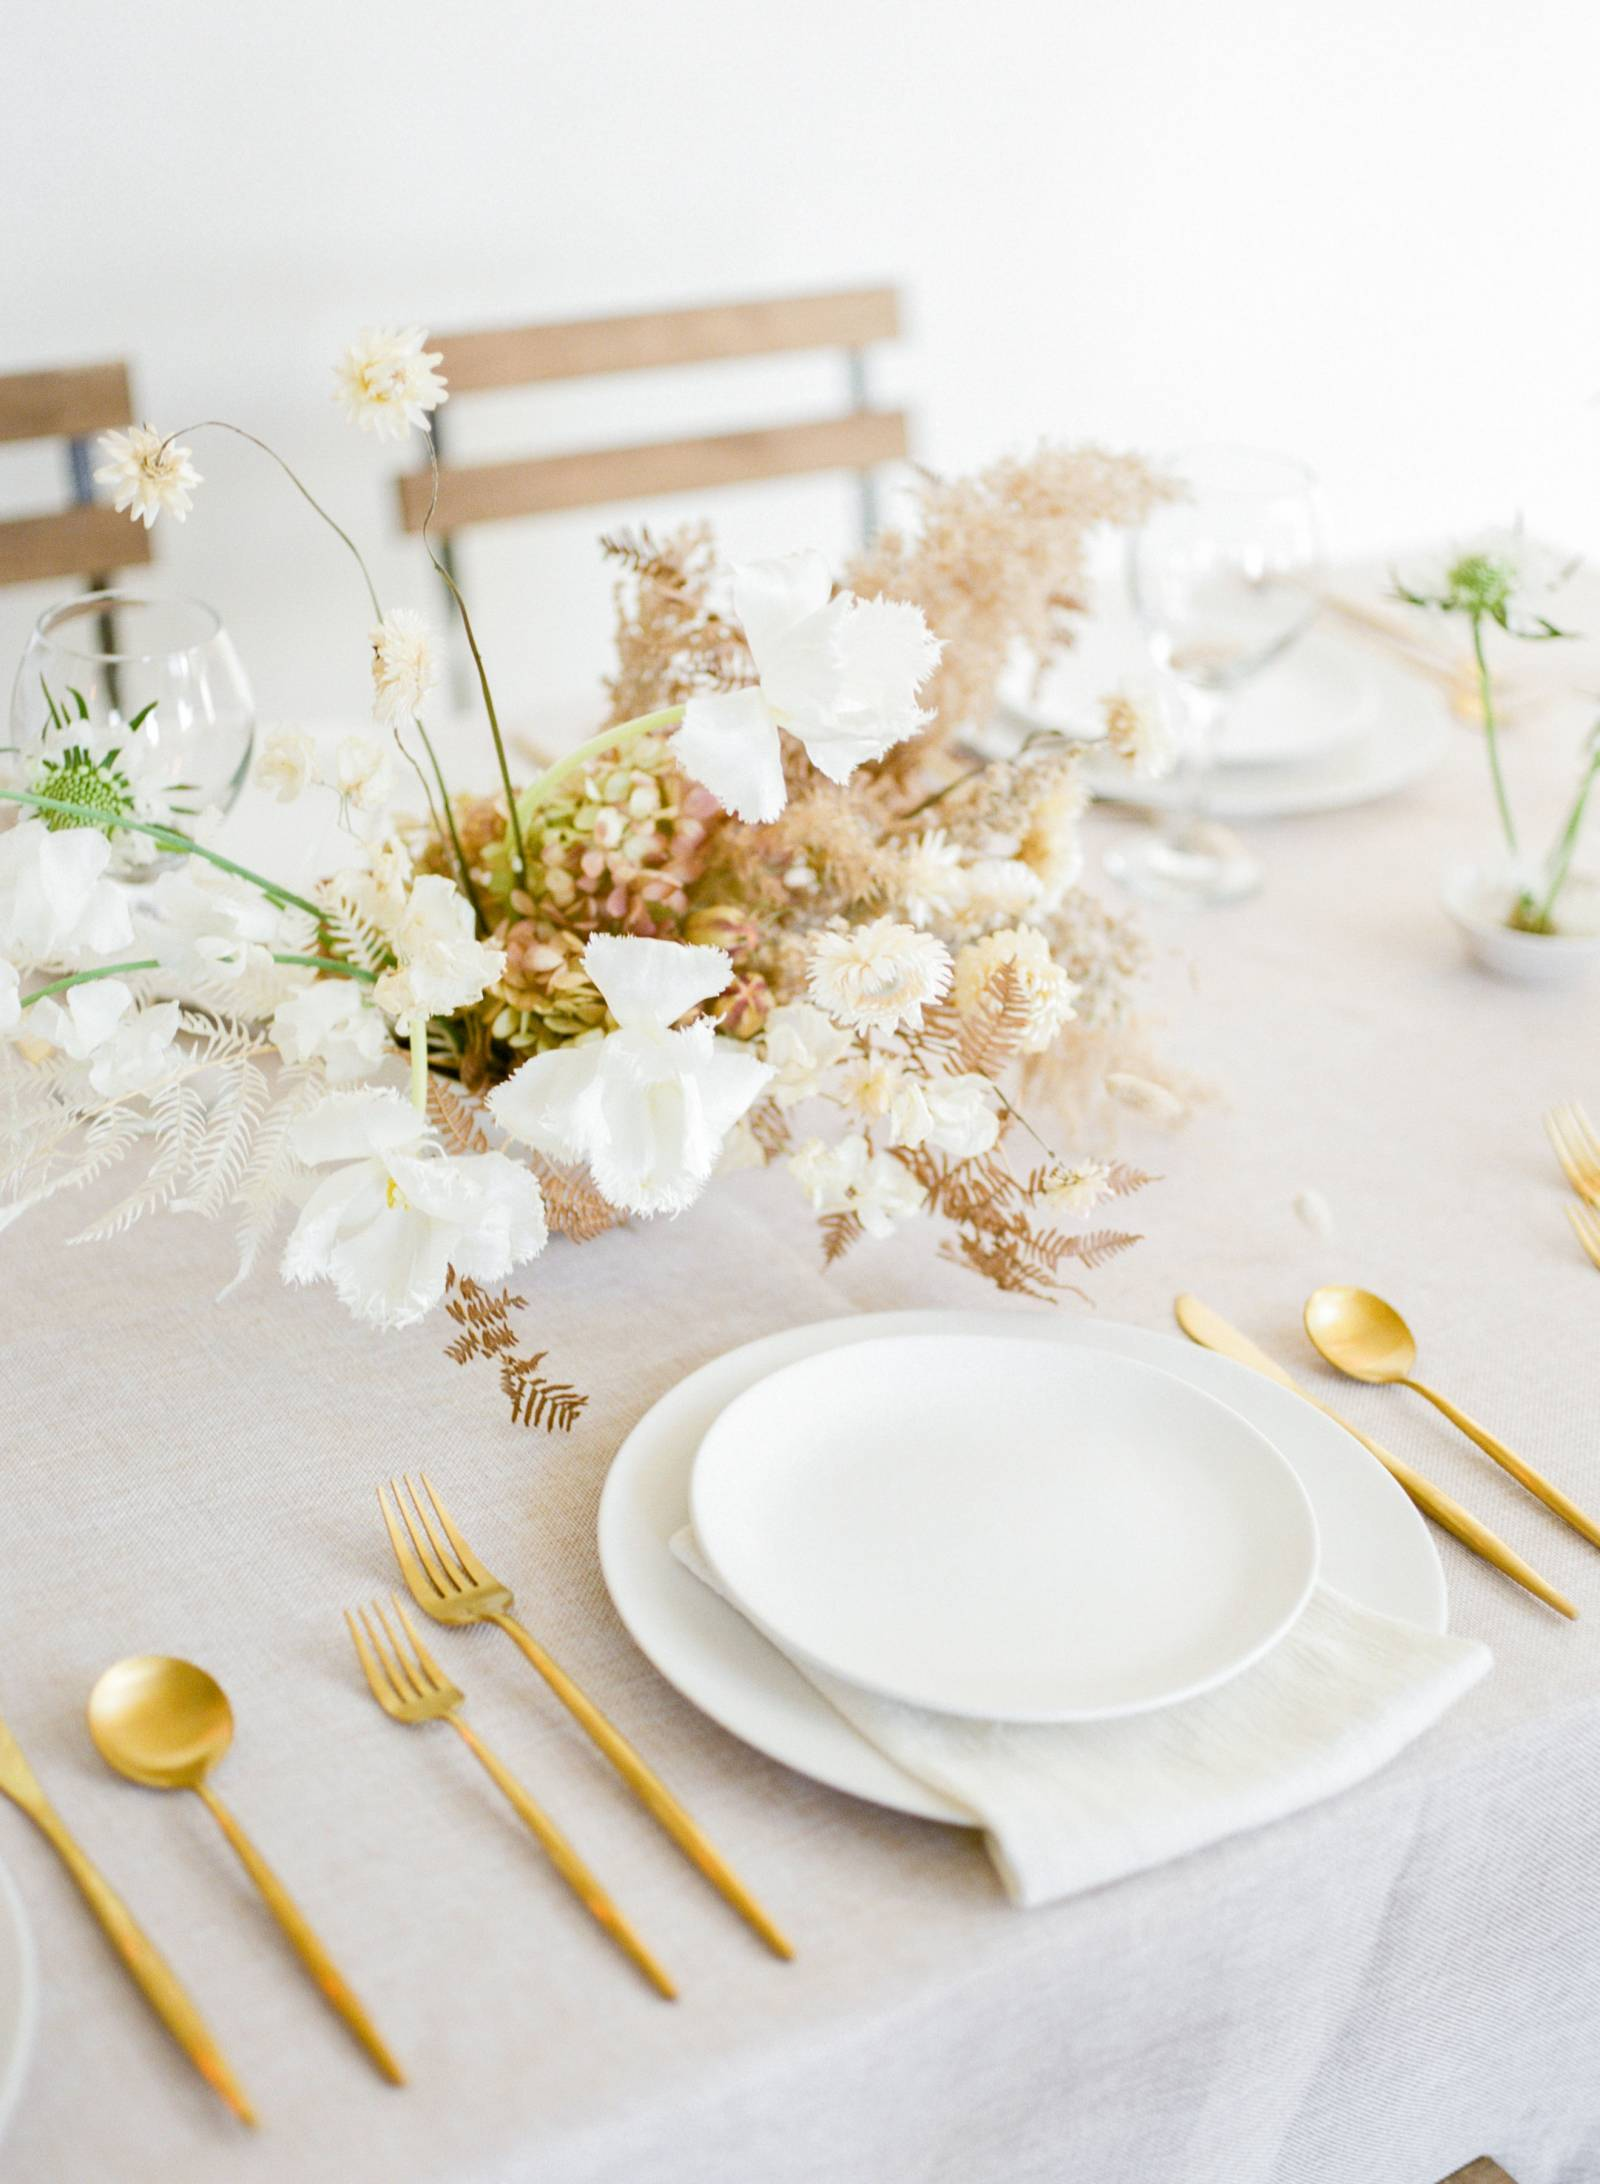 simple aesthetic and minimalist wedding tablescape idea using pretty florals and gold tableware